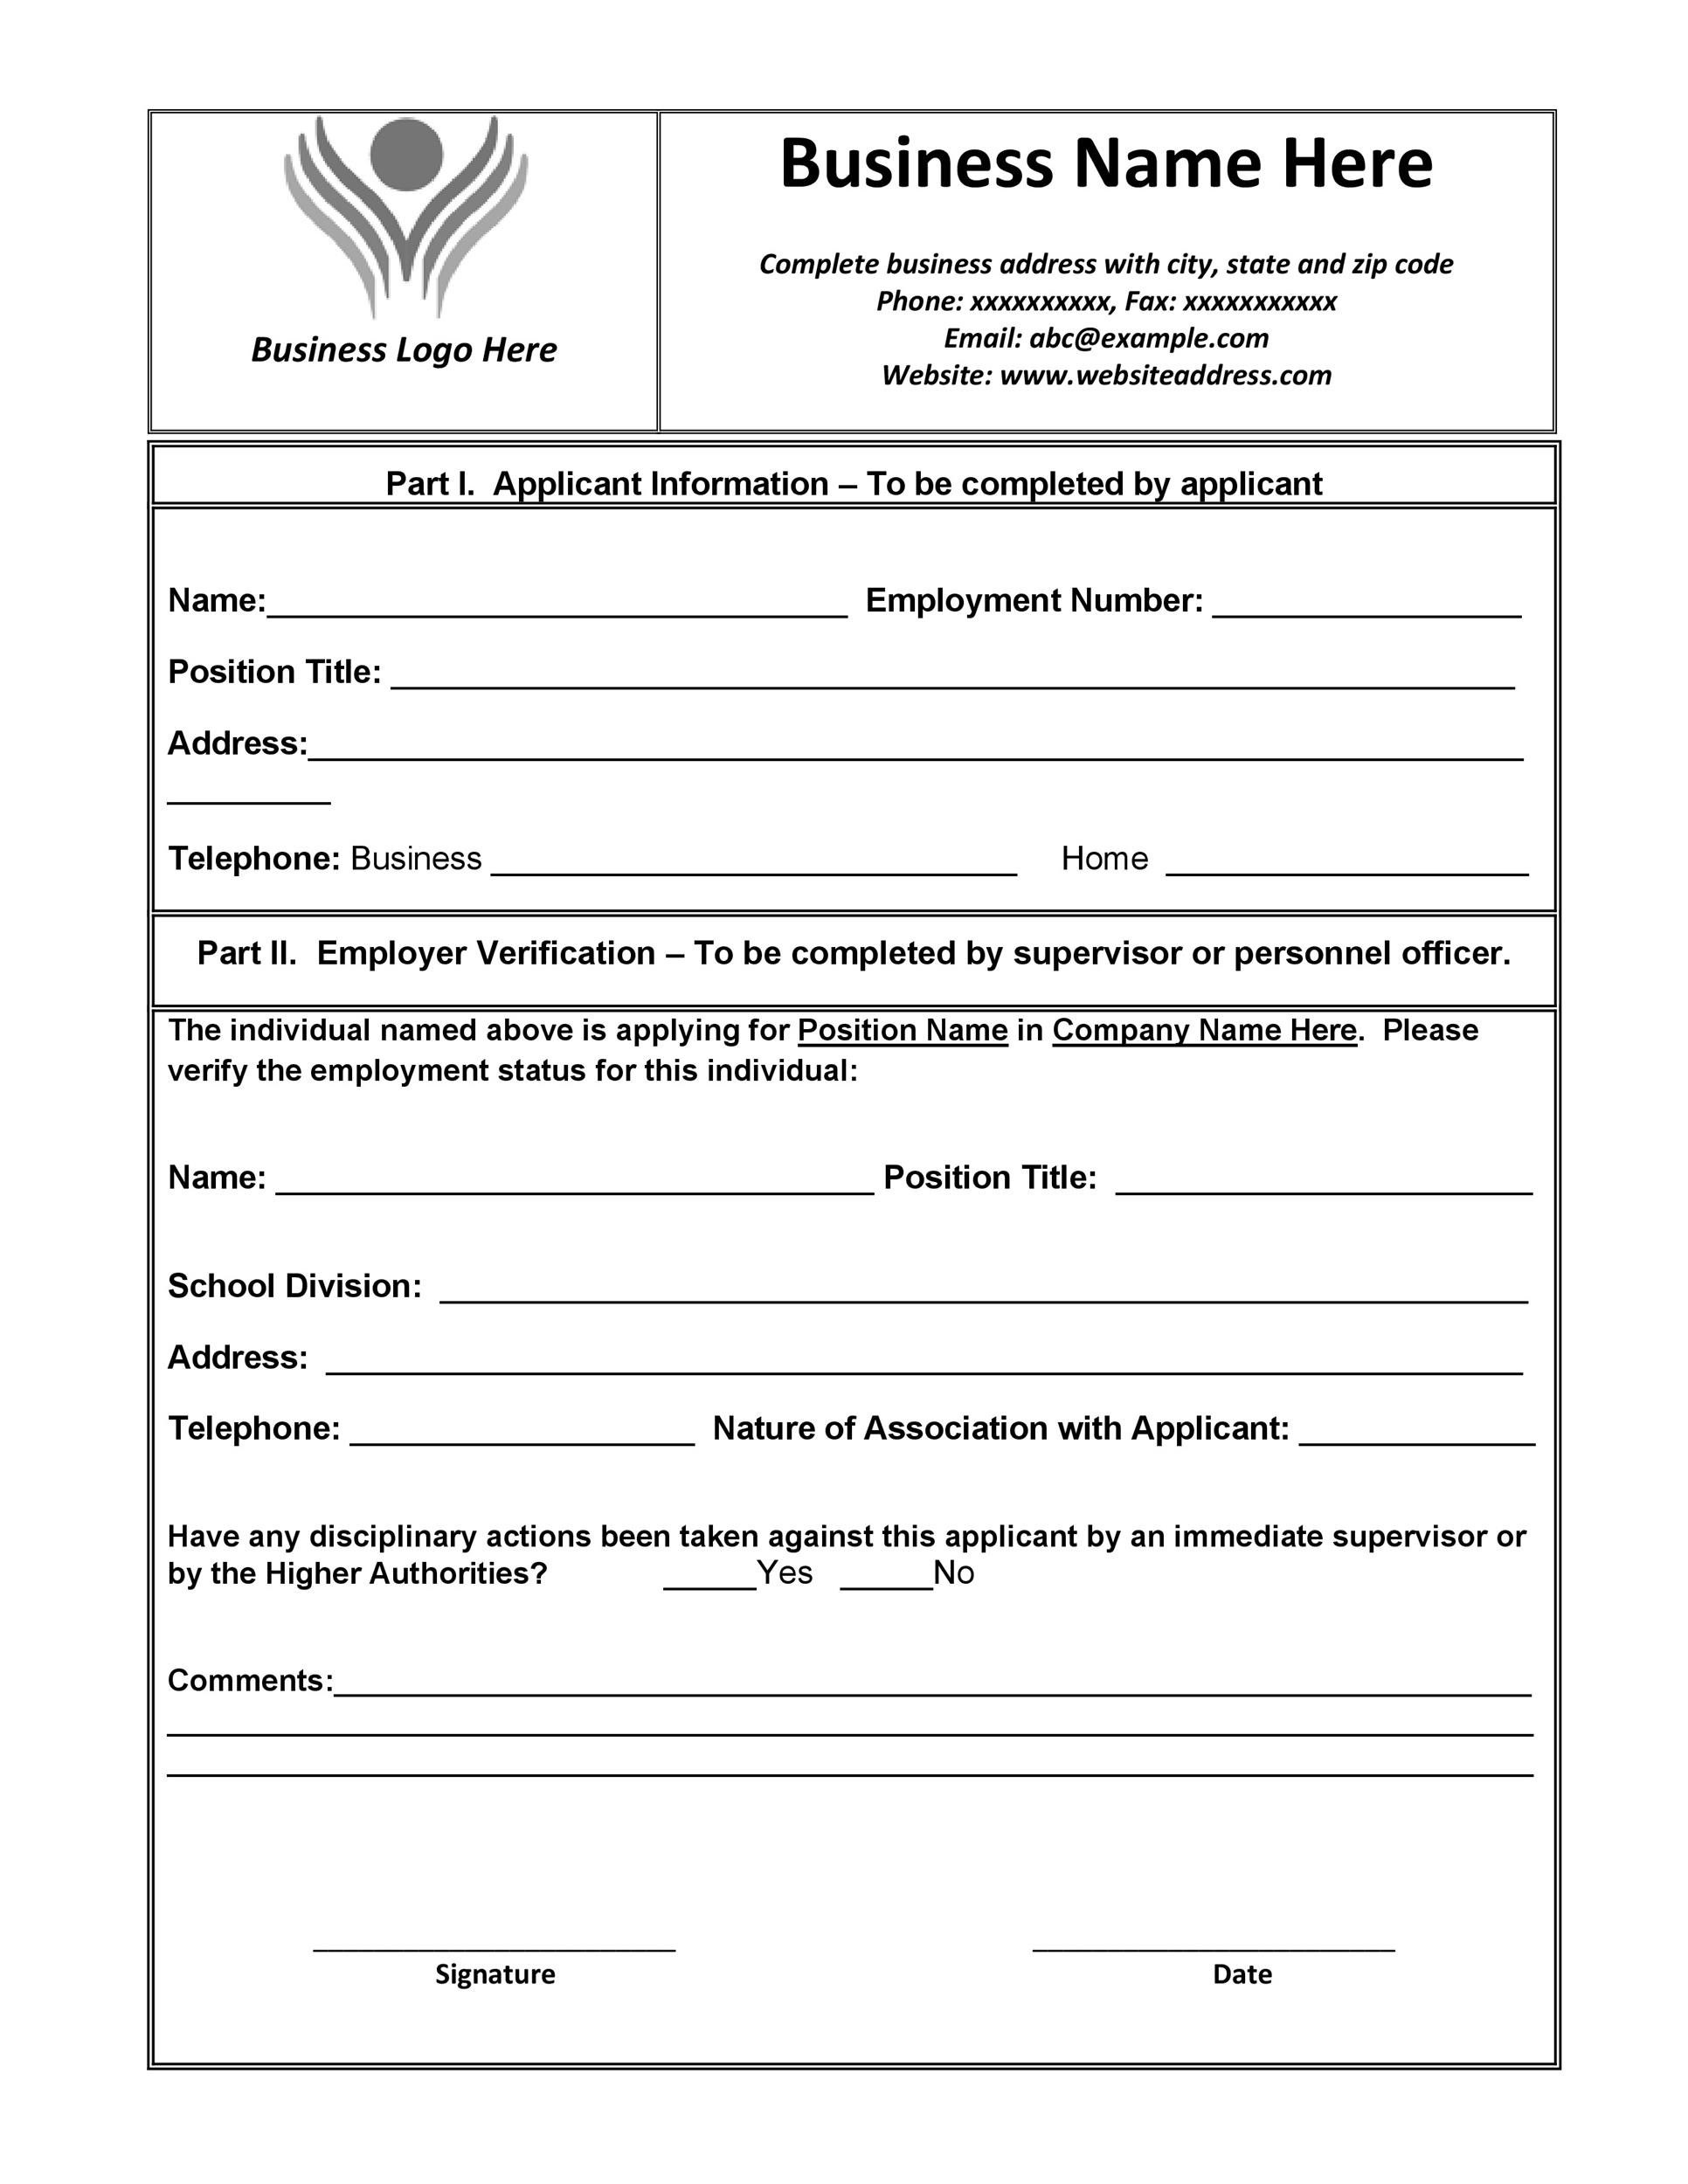 Attractive Sample Employment Verification Form